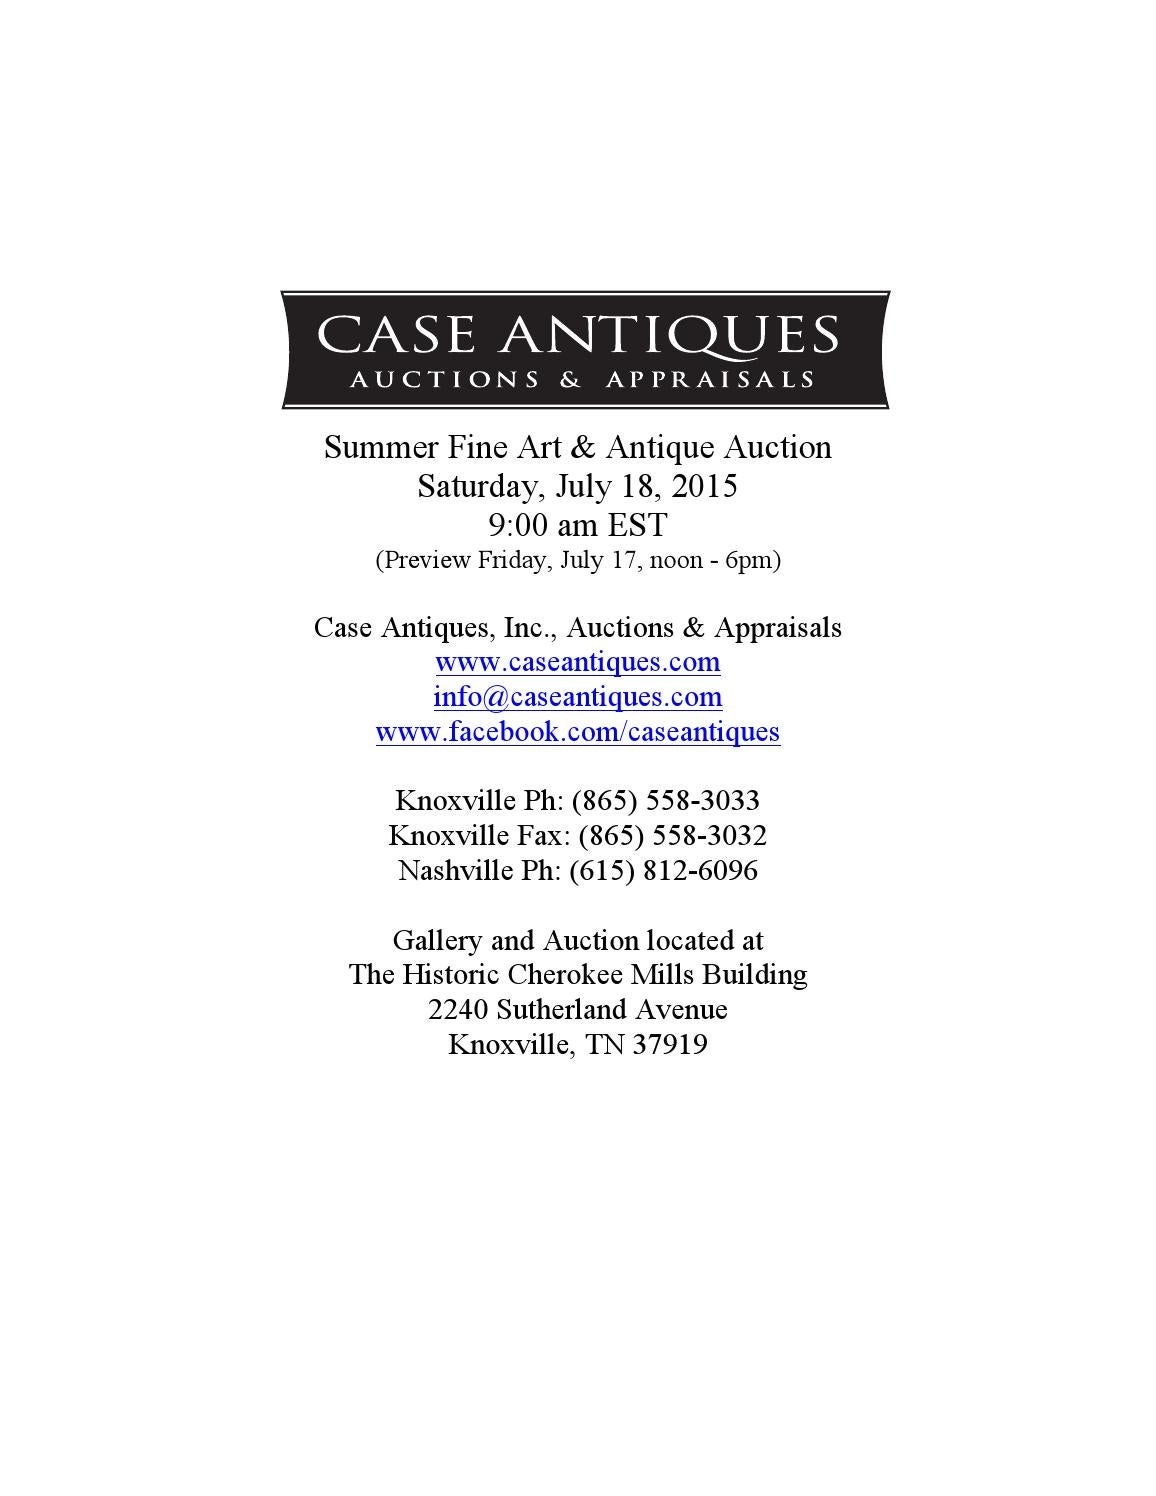 card catalog in home decor furnish burnish.htm case antiques   auctions july 18 2015 catalog by case antiques  case antiques   auctions july 18 2015